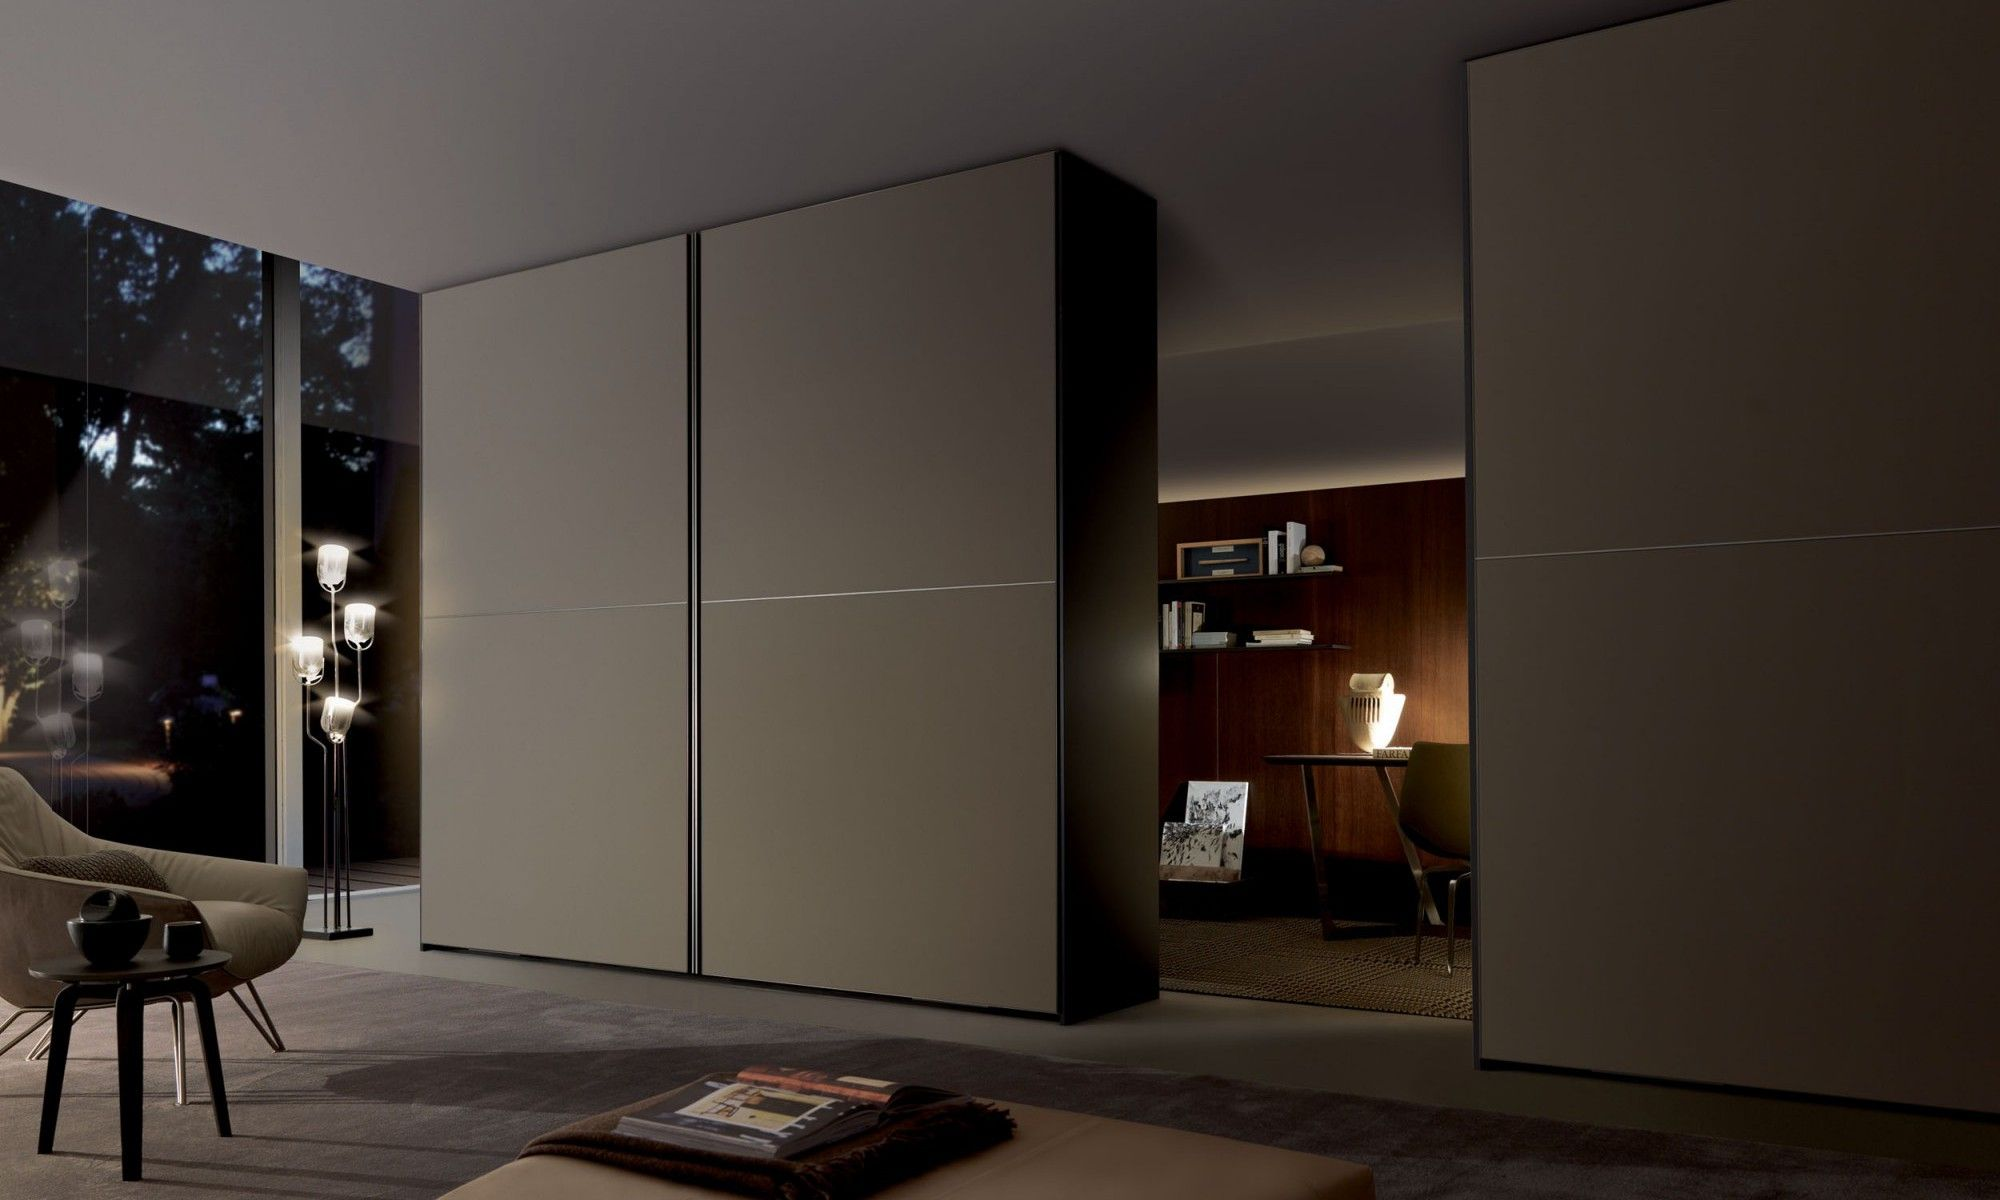 The Evocative Transparency Of Glass The Playful Reflexions Of  # Giellesse Muebles